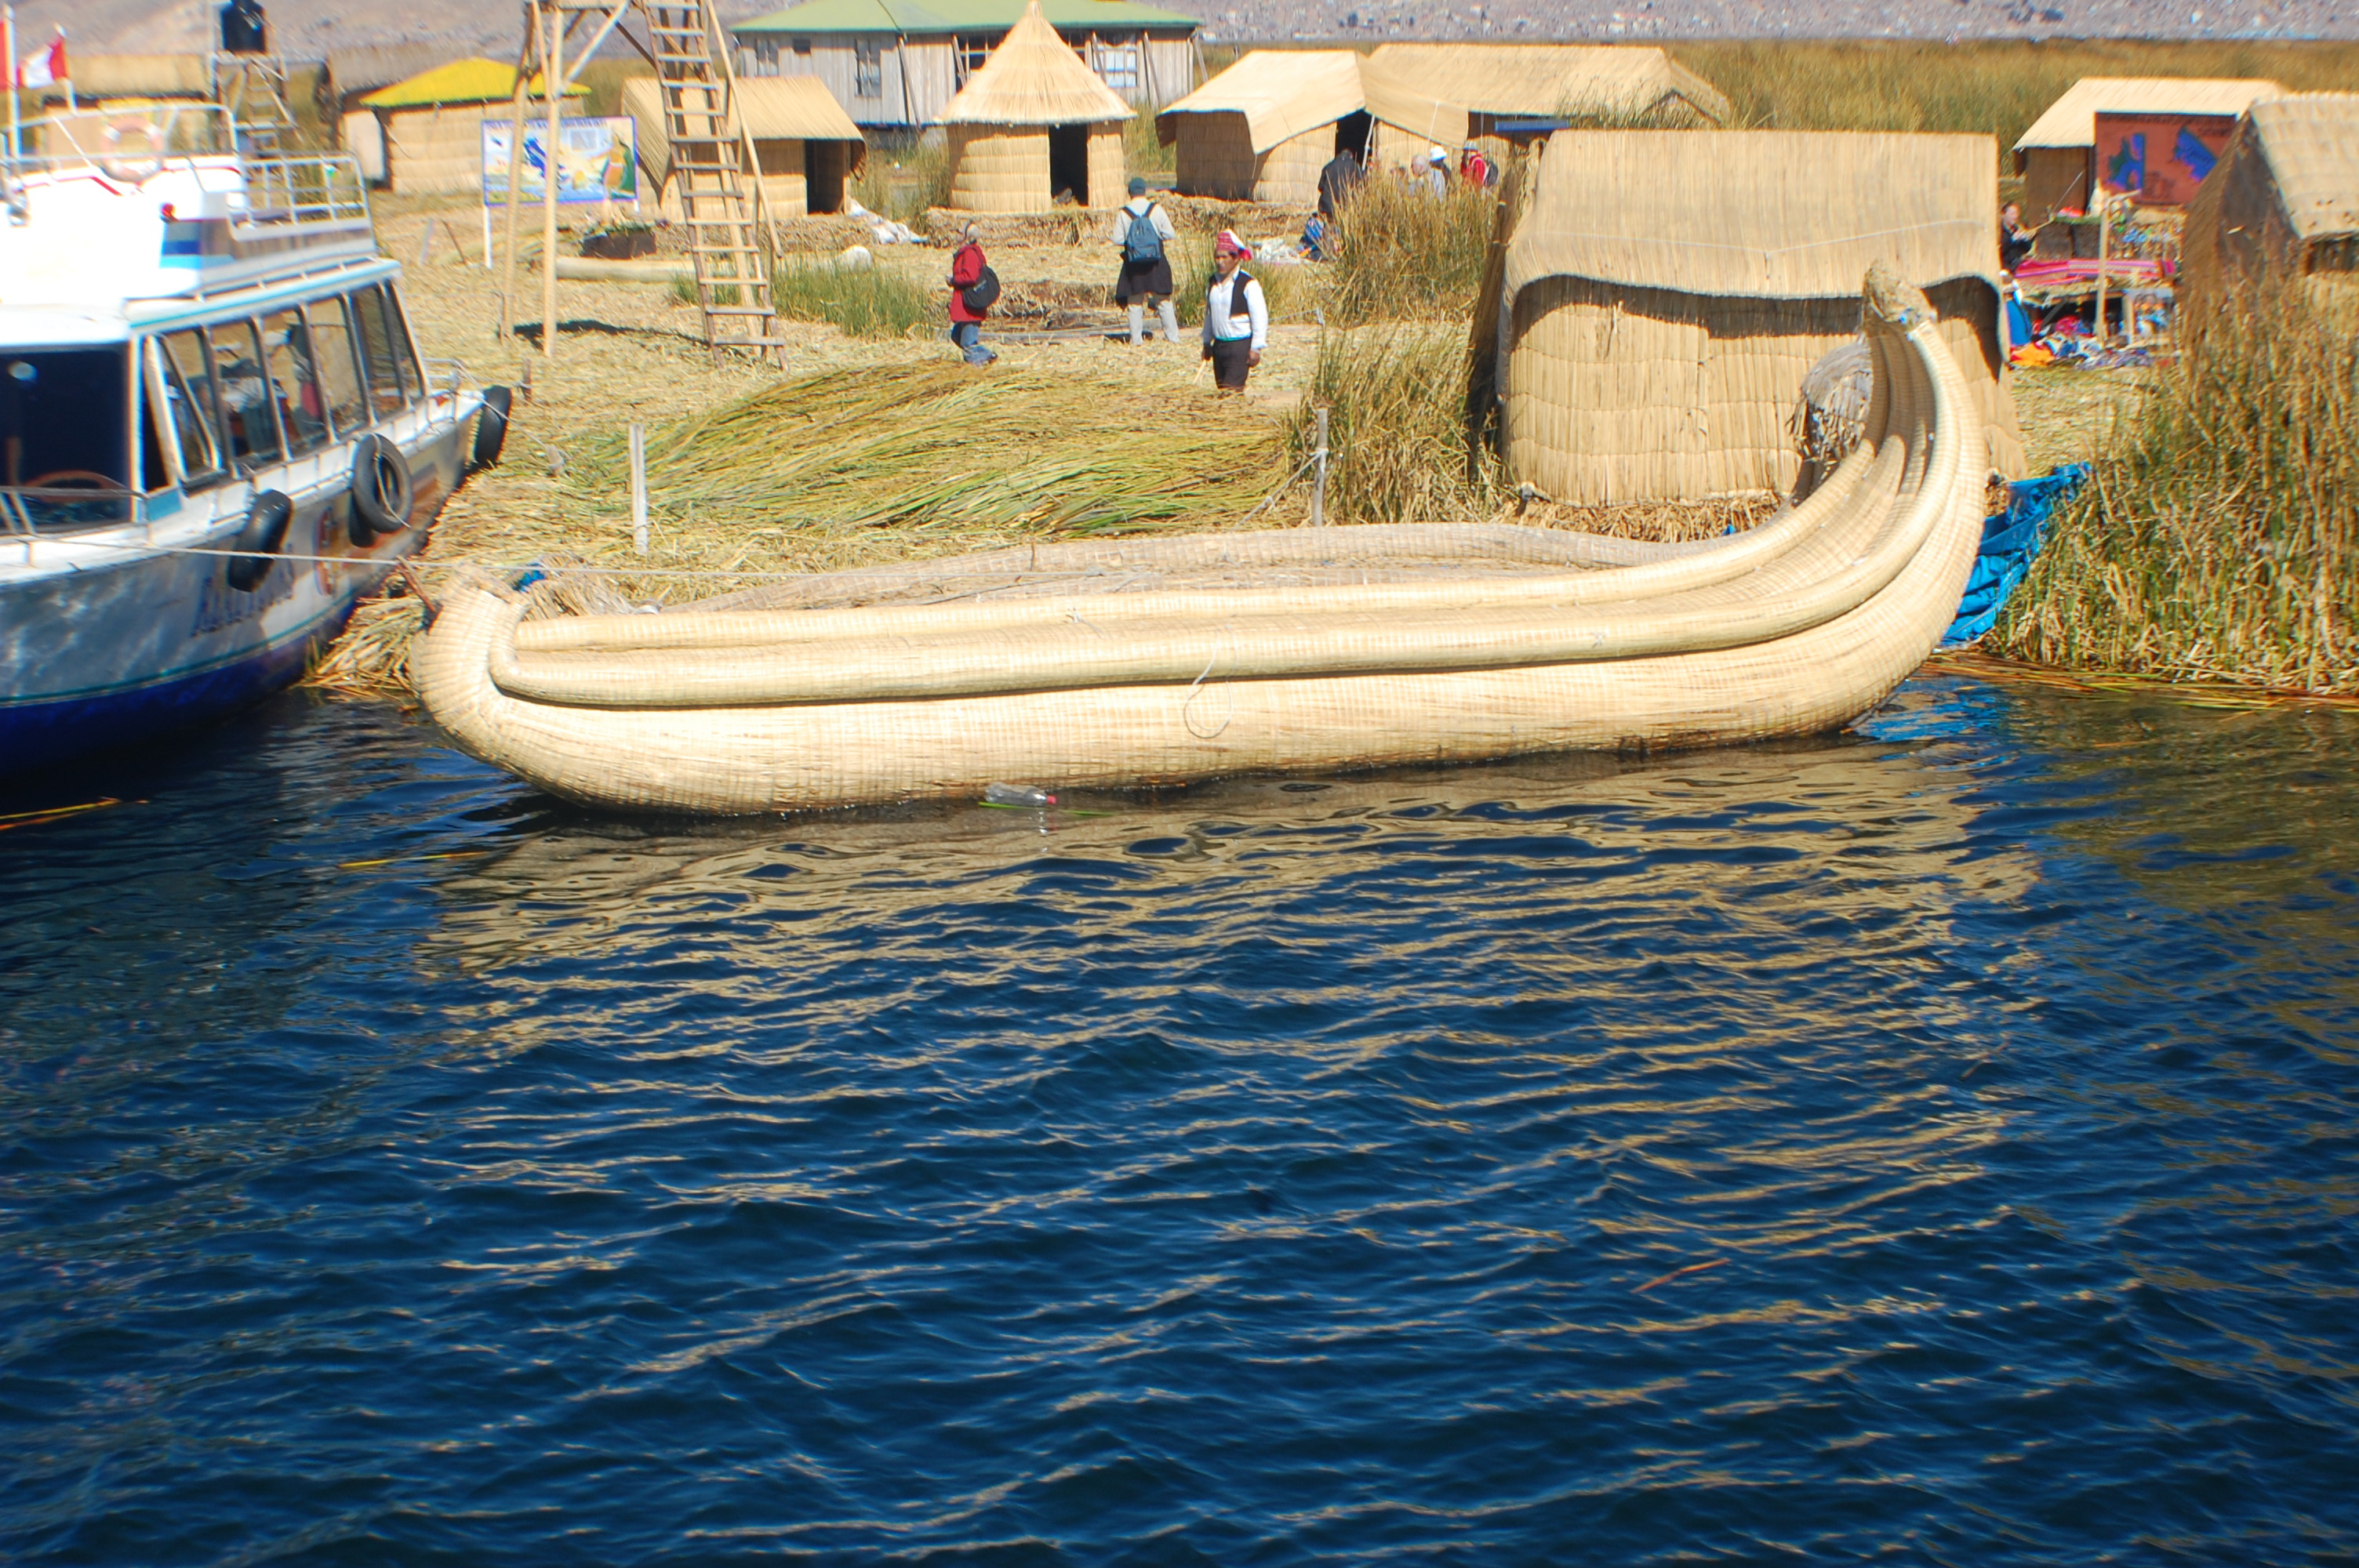 """We rode in these super cool reed boats. I bought a couple really colorful 5"""" replicas to take back home"""